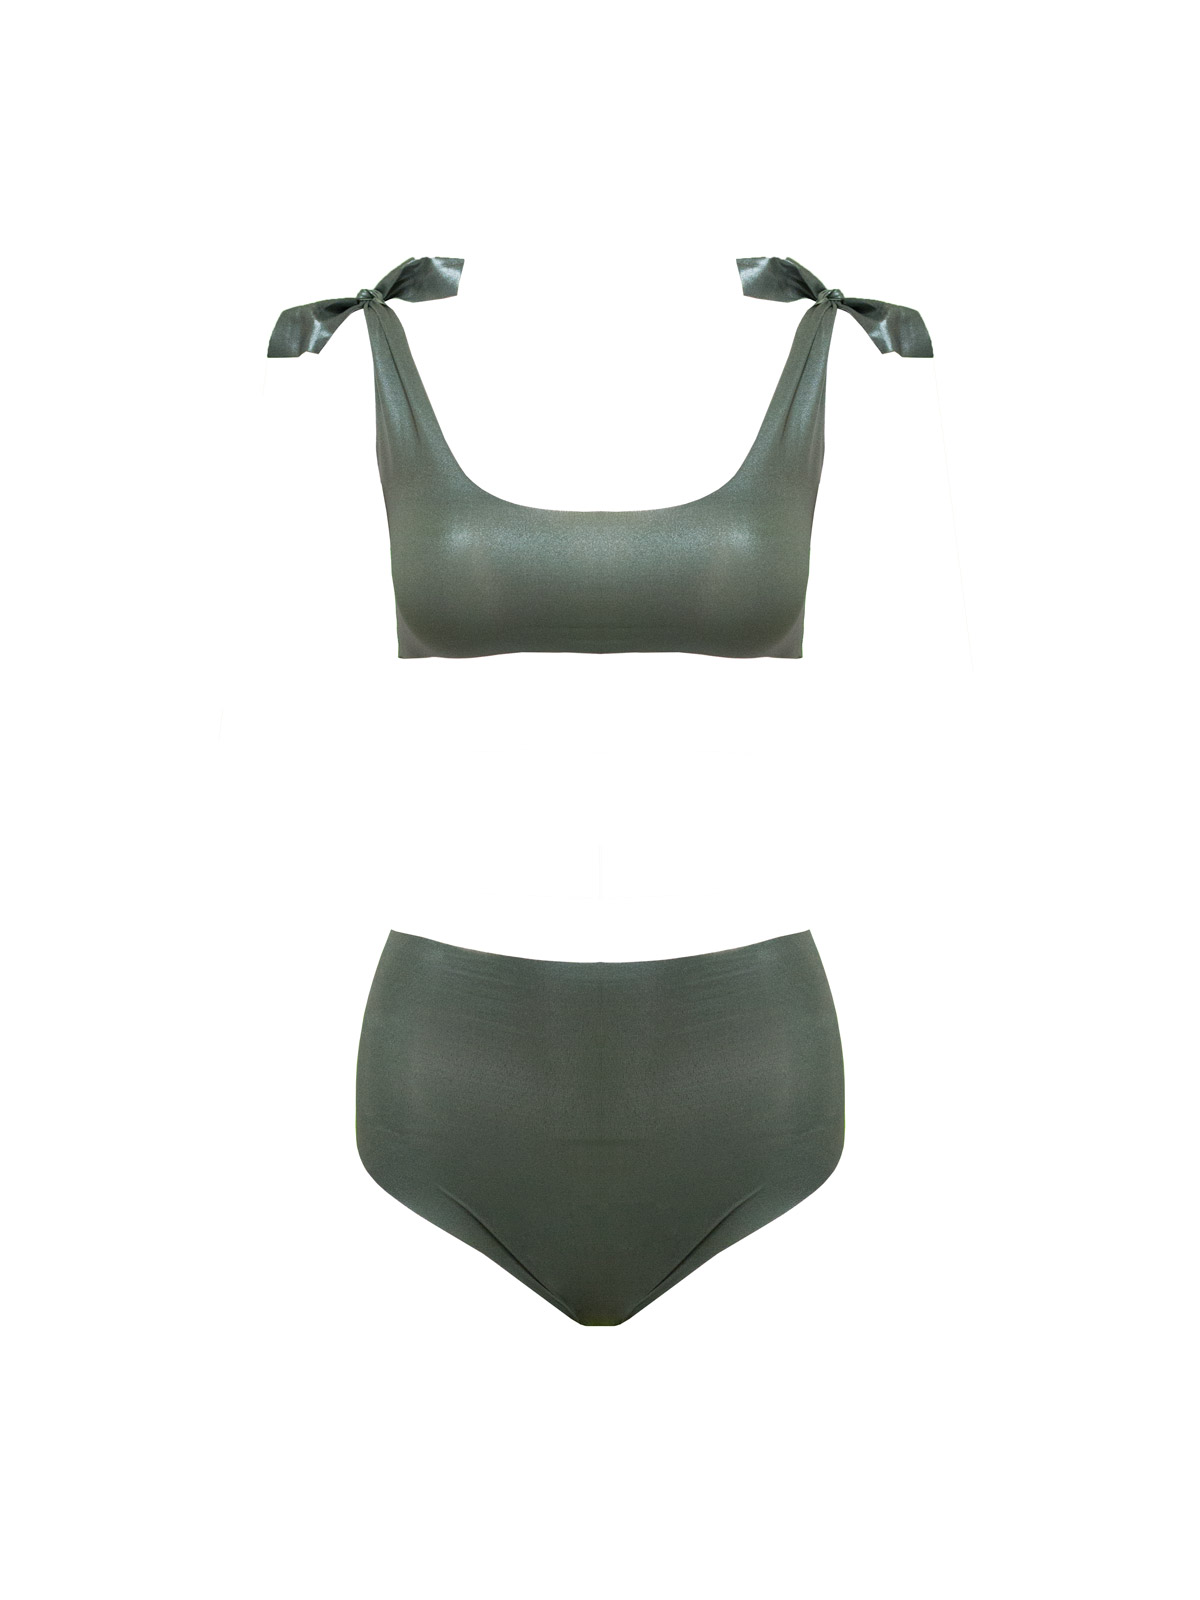 Knotting Bay High Waisted in Metallic Green